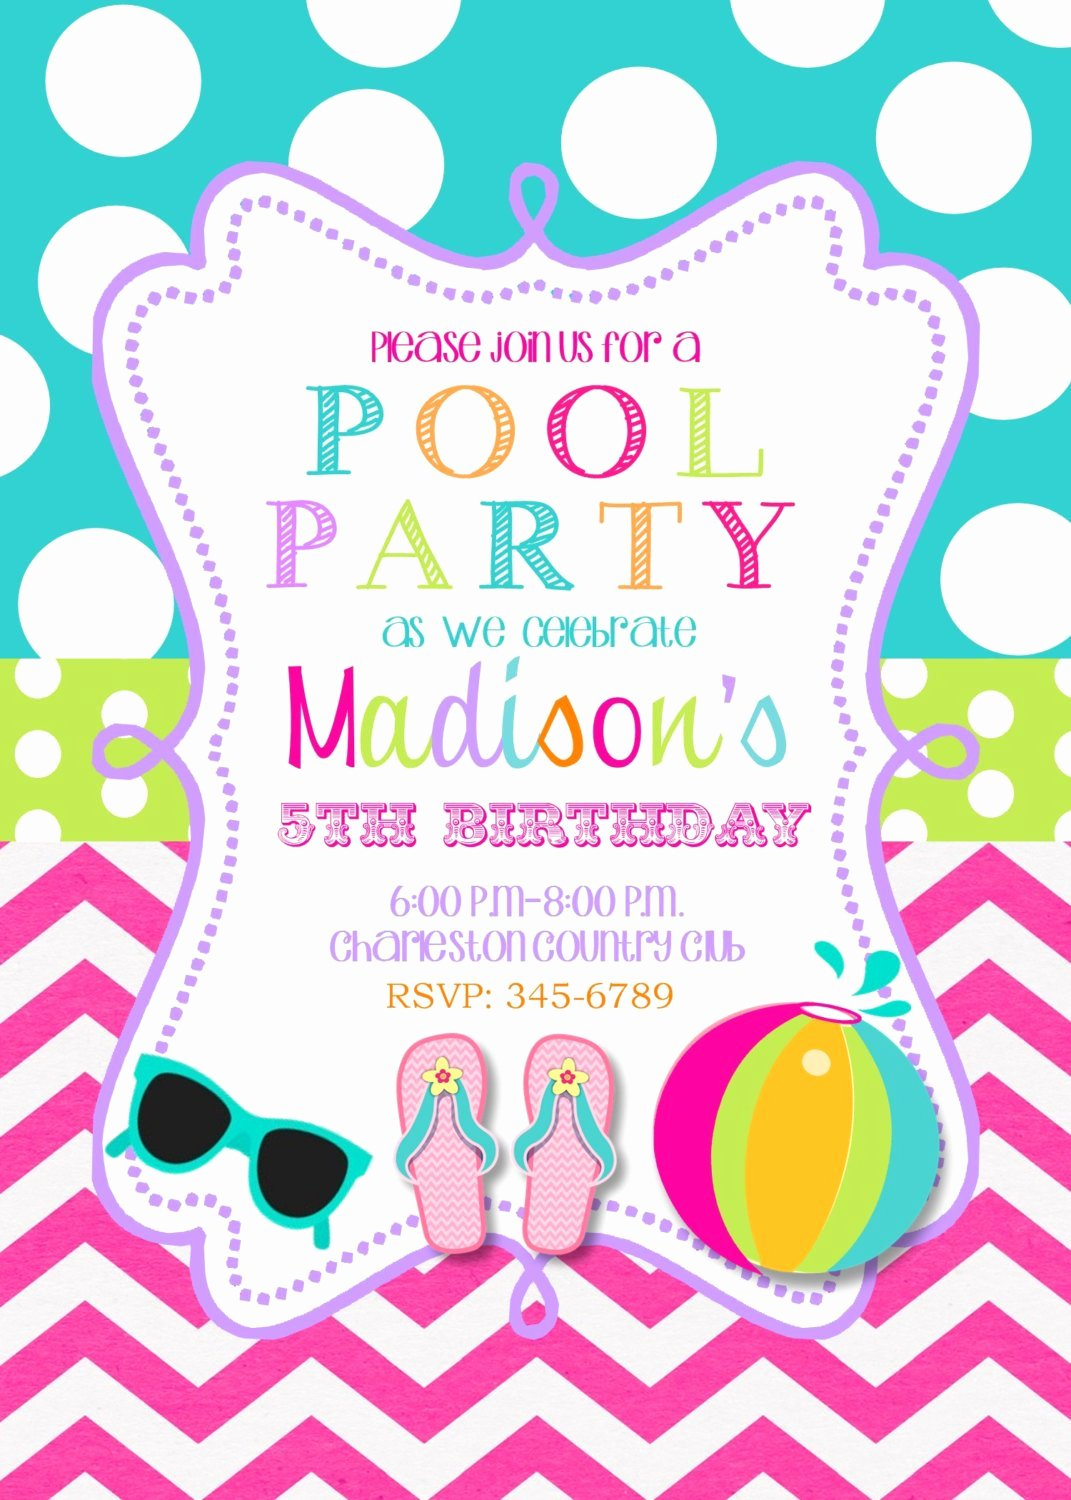 Pool Party Invitation Template Lovely Pool Party Birthday Party Invitations Printable or Digital